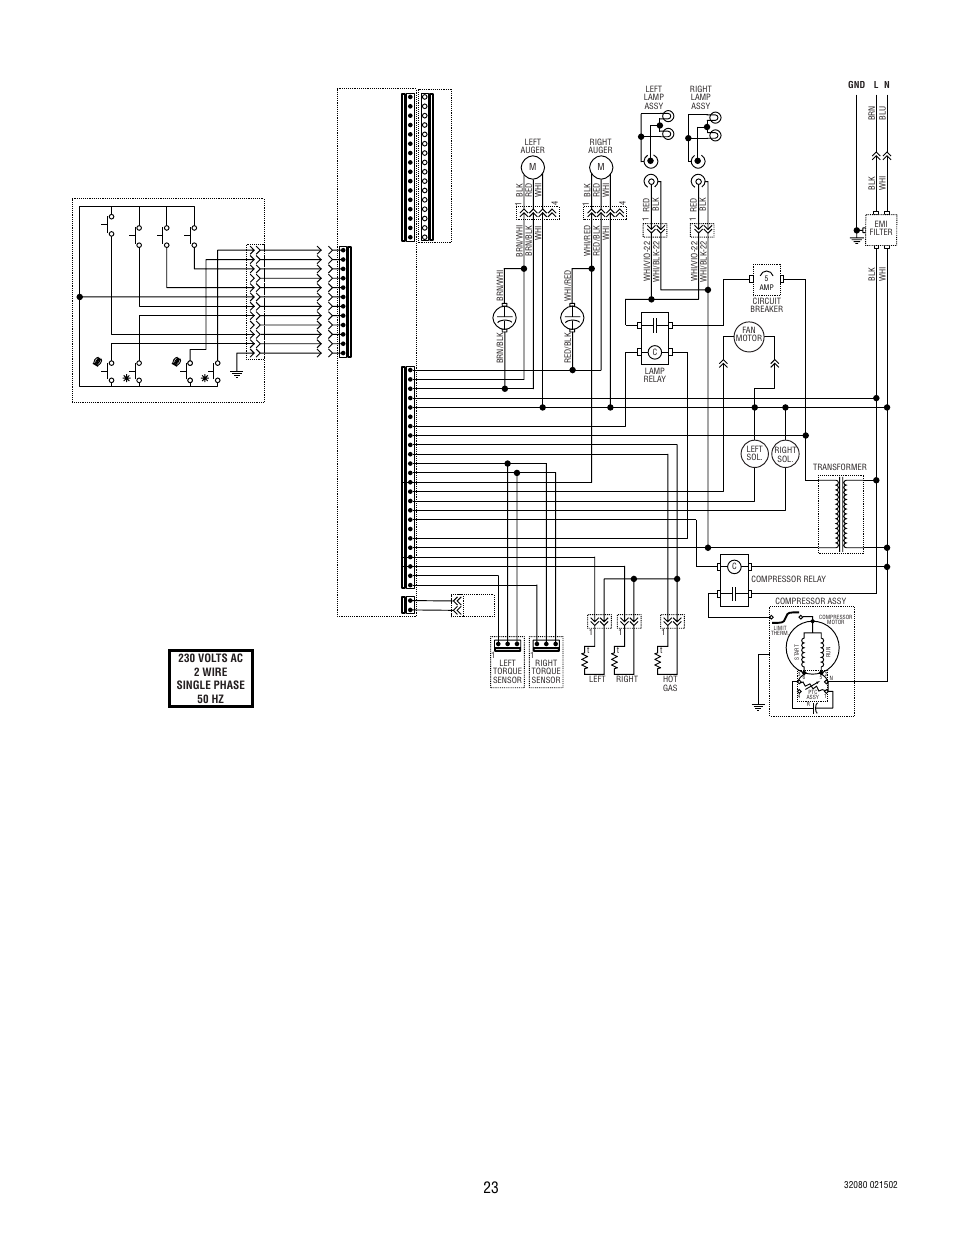 Fender Stratocaster Ultra Wiring Diagram - All Wiring Diagram on